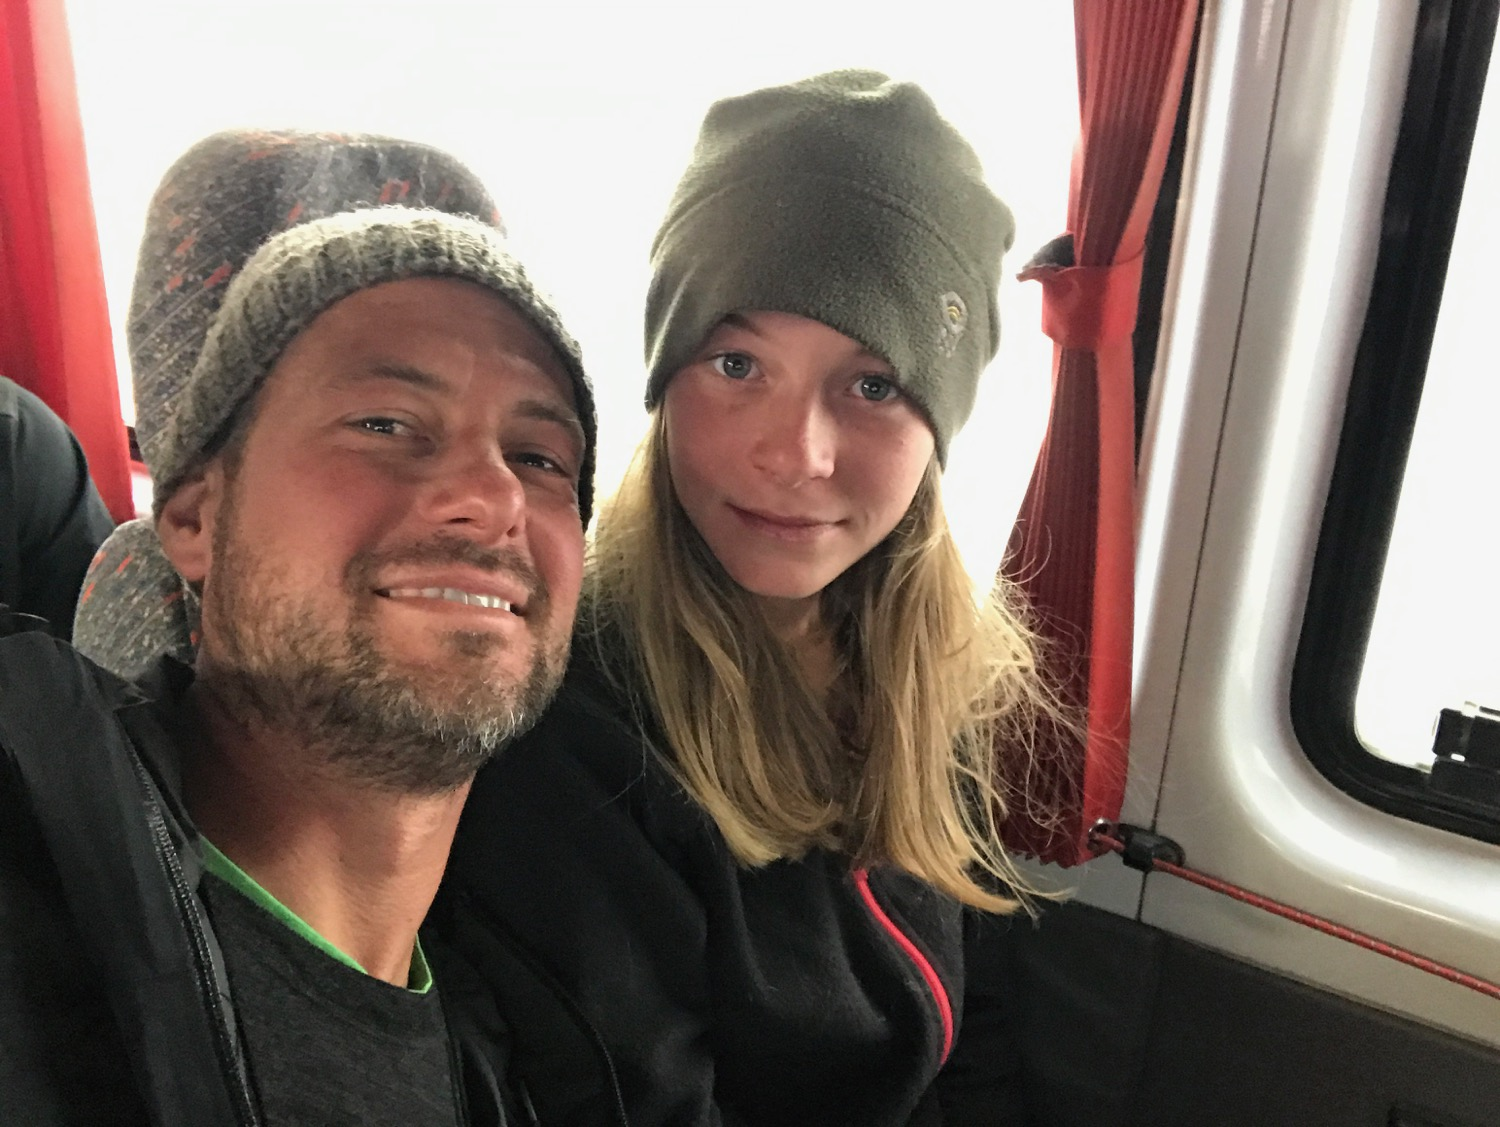 Daddy & Daughter in the Bus after a Long 8-day Trek Together